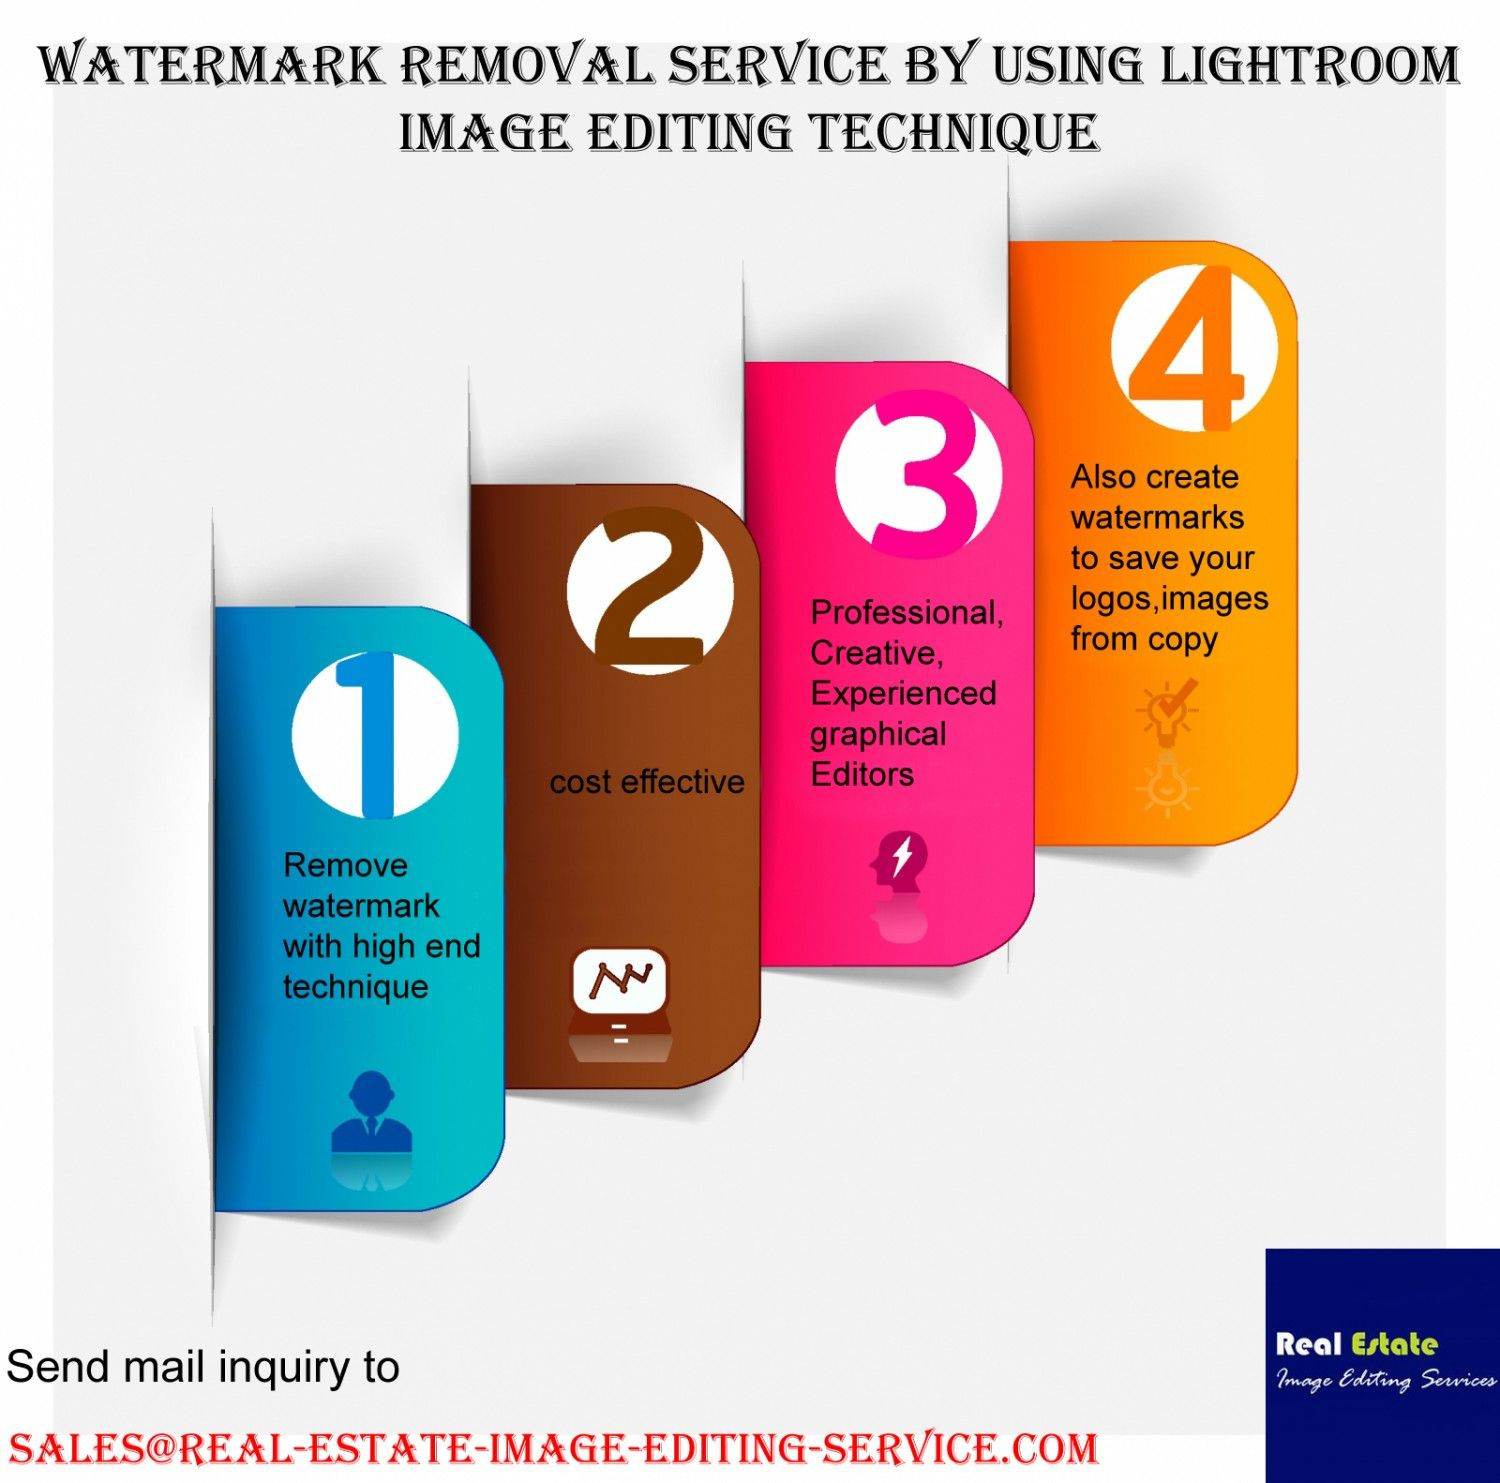 Watermark removal service by using Lightroom image editing